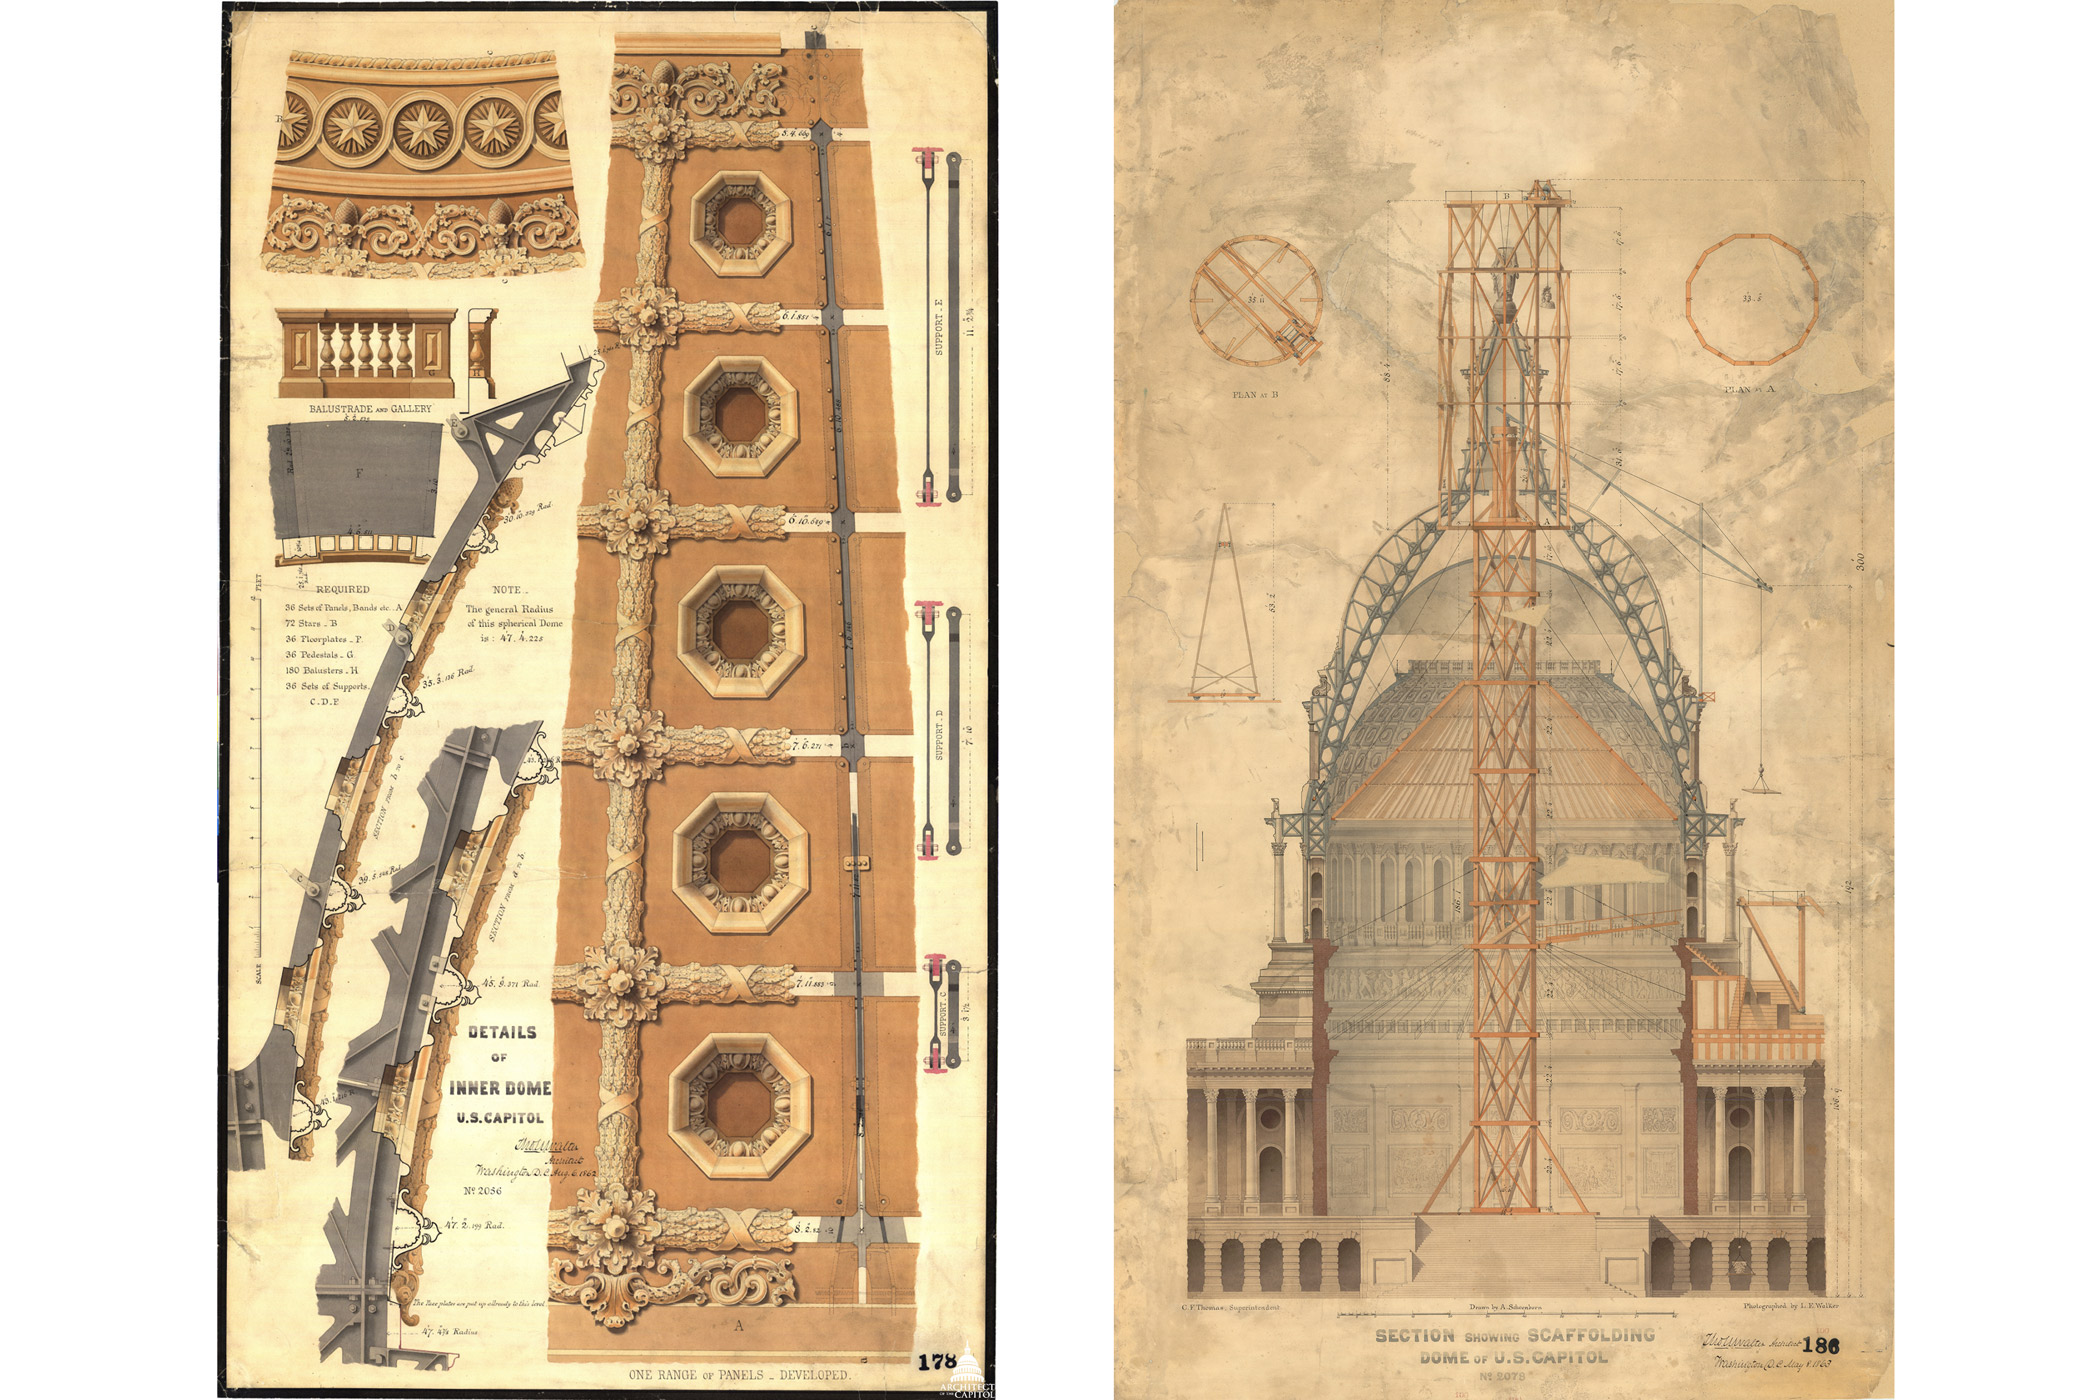 Drawings made in 1863 by the original architect of the Capitol Thomas U. Walter show the scaffolding plan for raising Statue of Freedom to top of dome (right) and details of rotunda coffers (left).